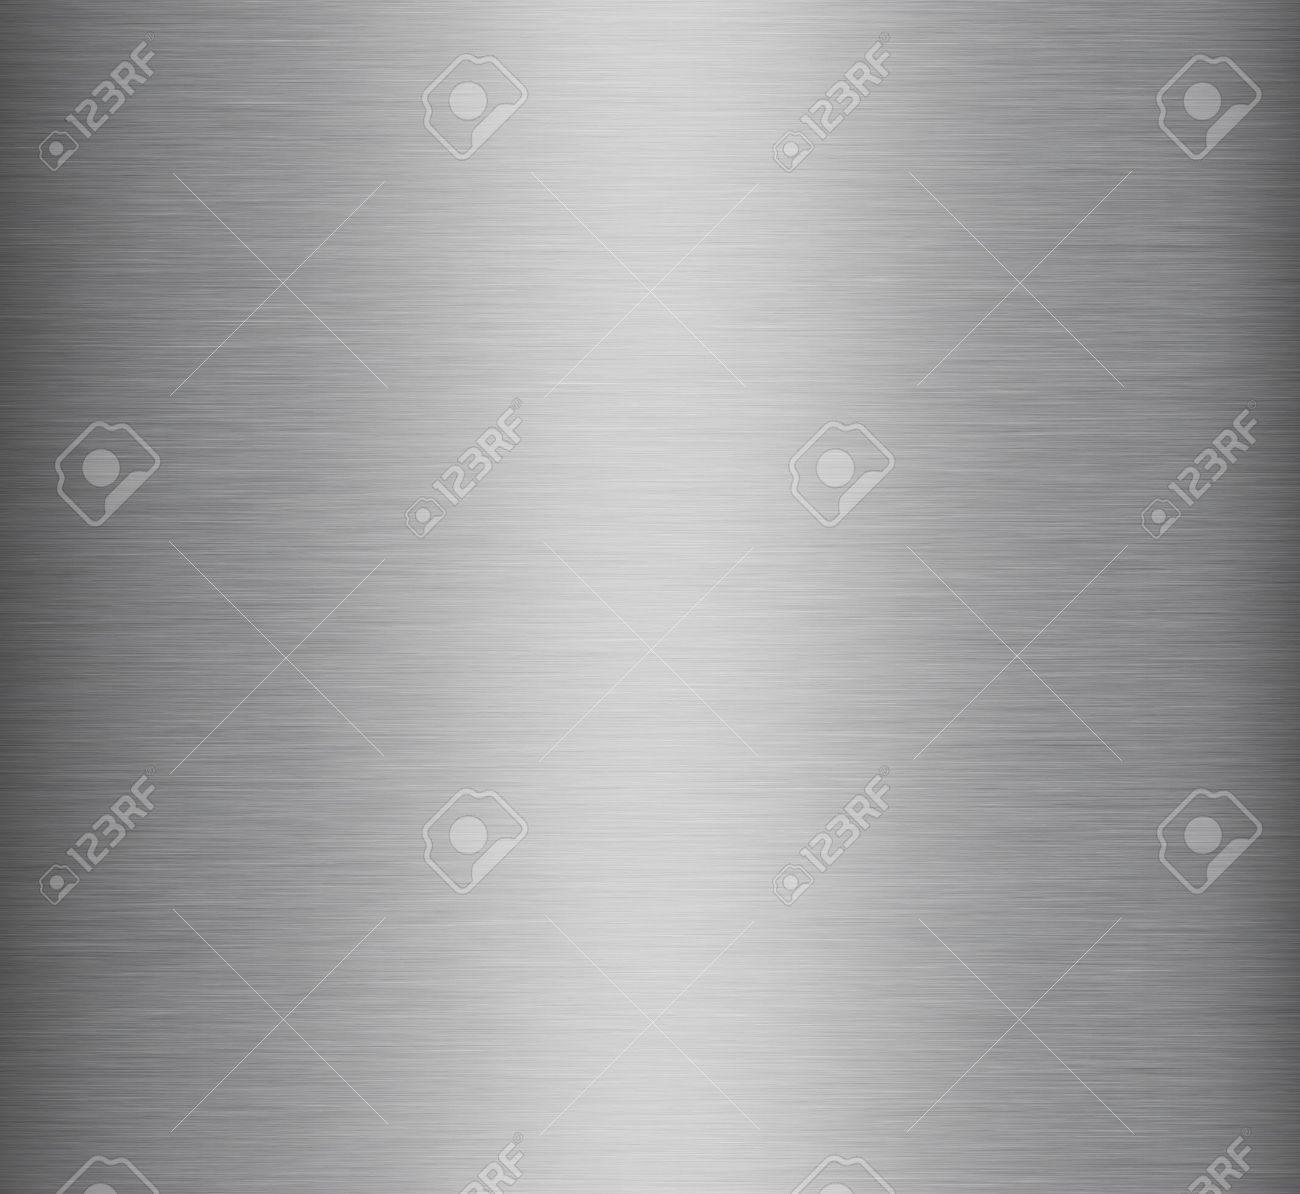 Stainless steel texture - 39433428